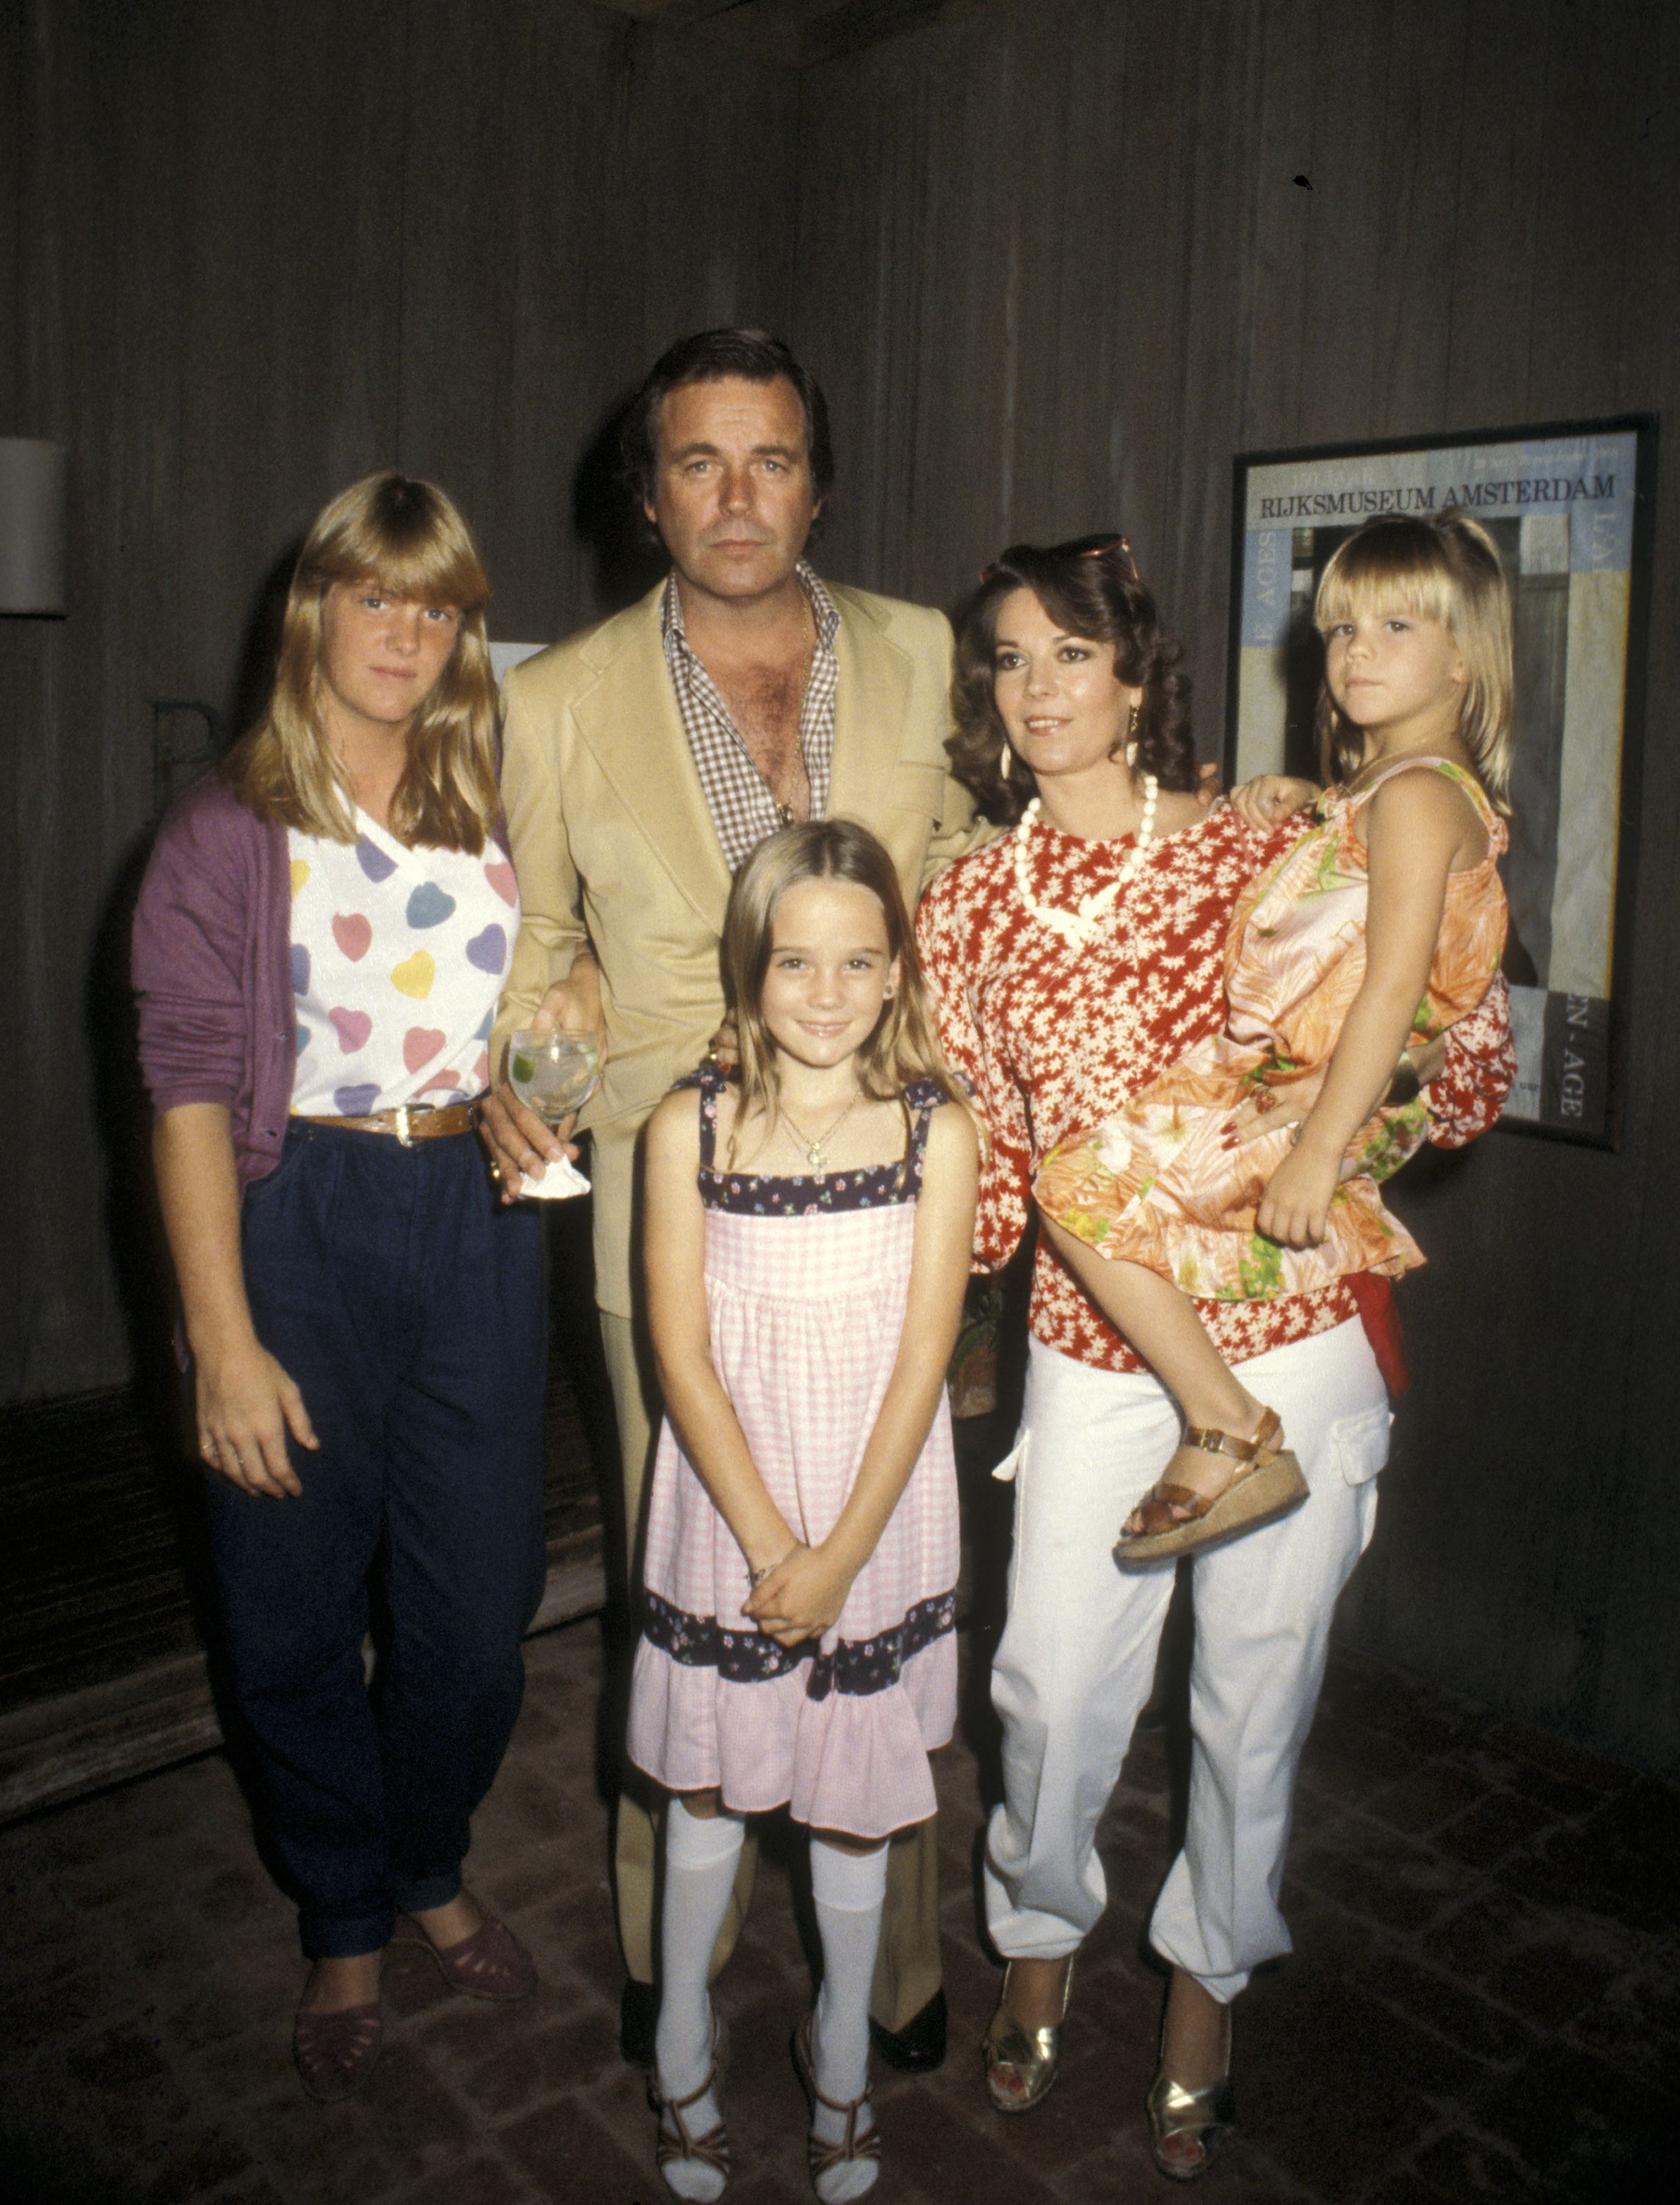 Robert Wagner, Natalie Wood, and daughters Katie Wagner, Natasha Gregson Wagner, and Courtney Wagner in 1980 | Source: Getty Images